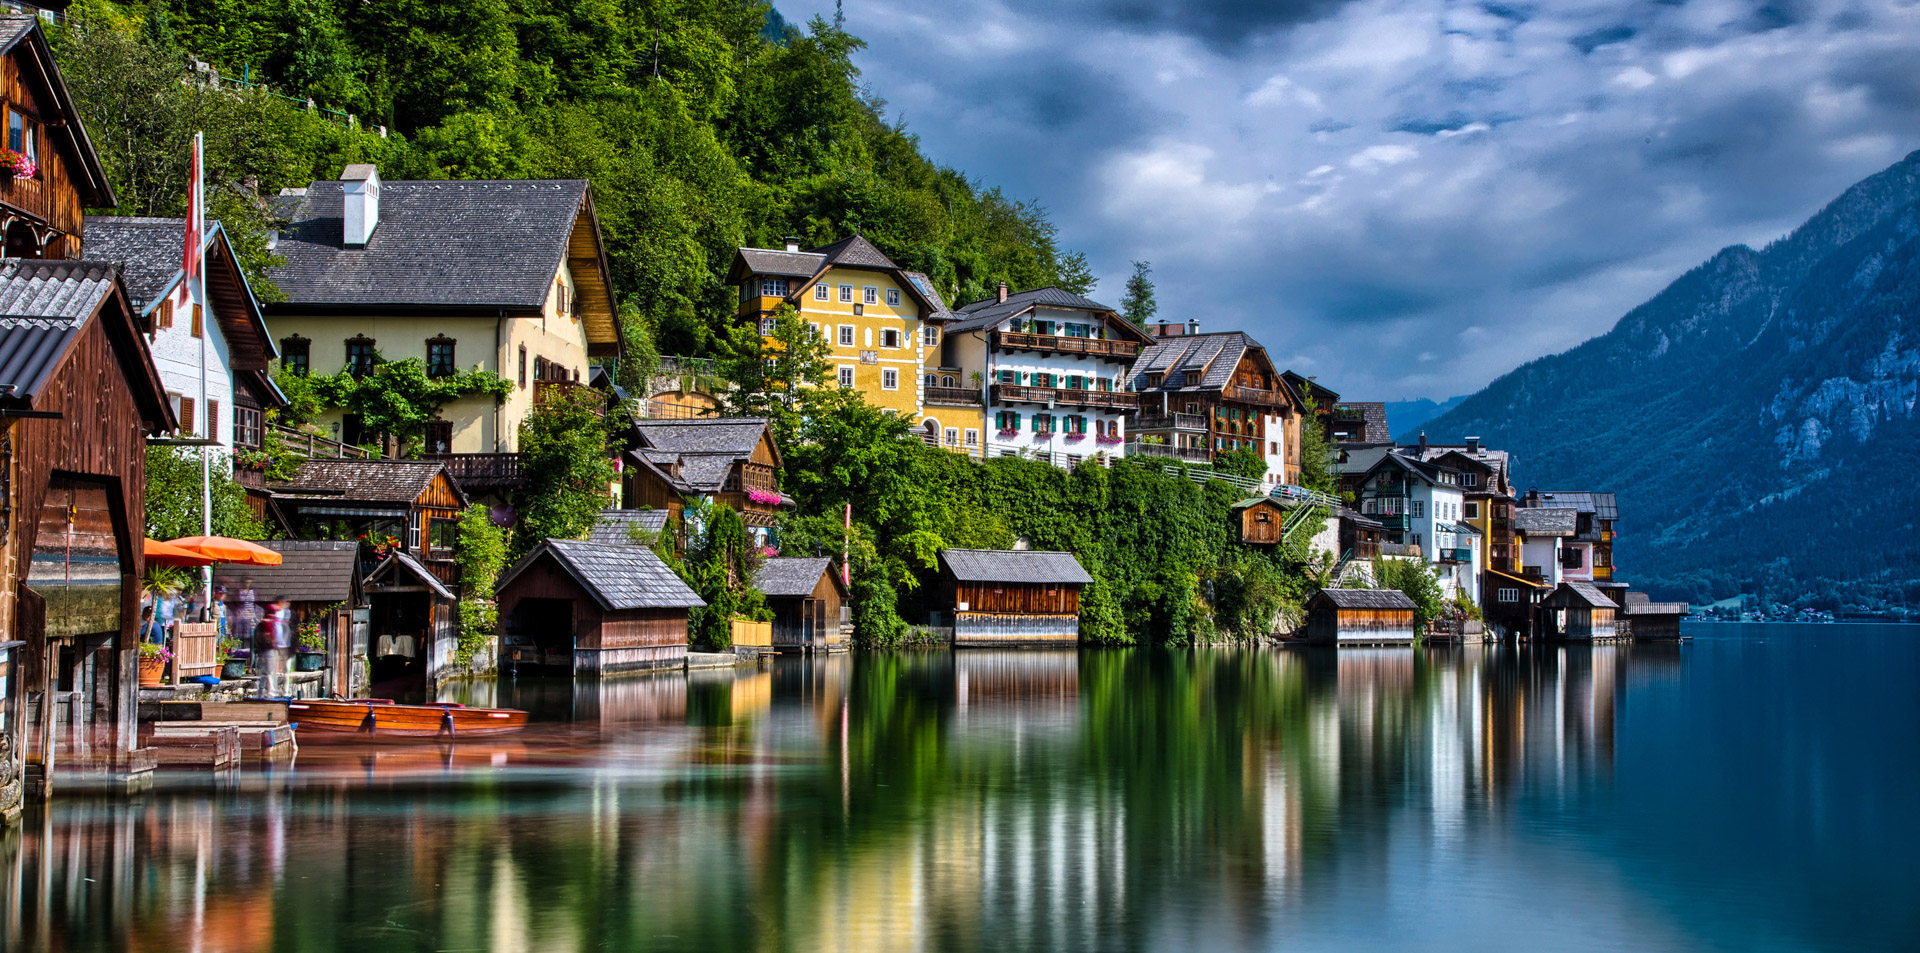 Scenic Austrian town with lake in foreground and mountains in background